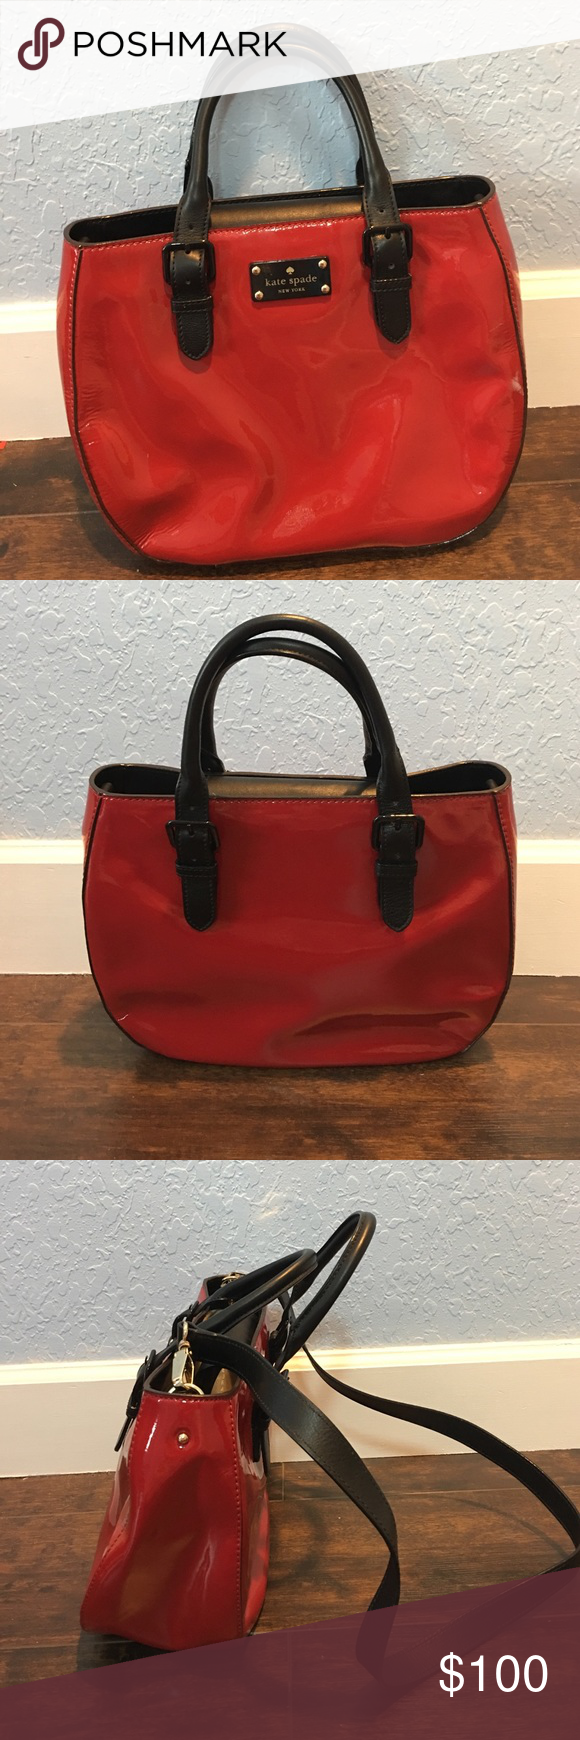 Kate Spade Kate Spade red and black purse. Only wore it once. Like new kate spade Bags Crossbody Bags